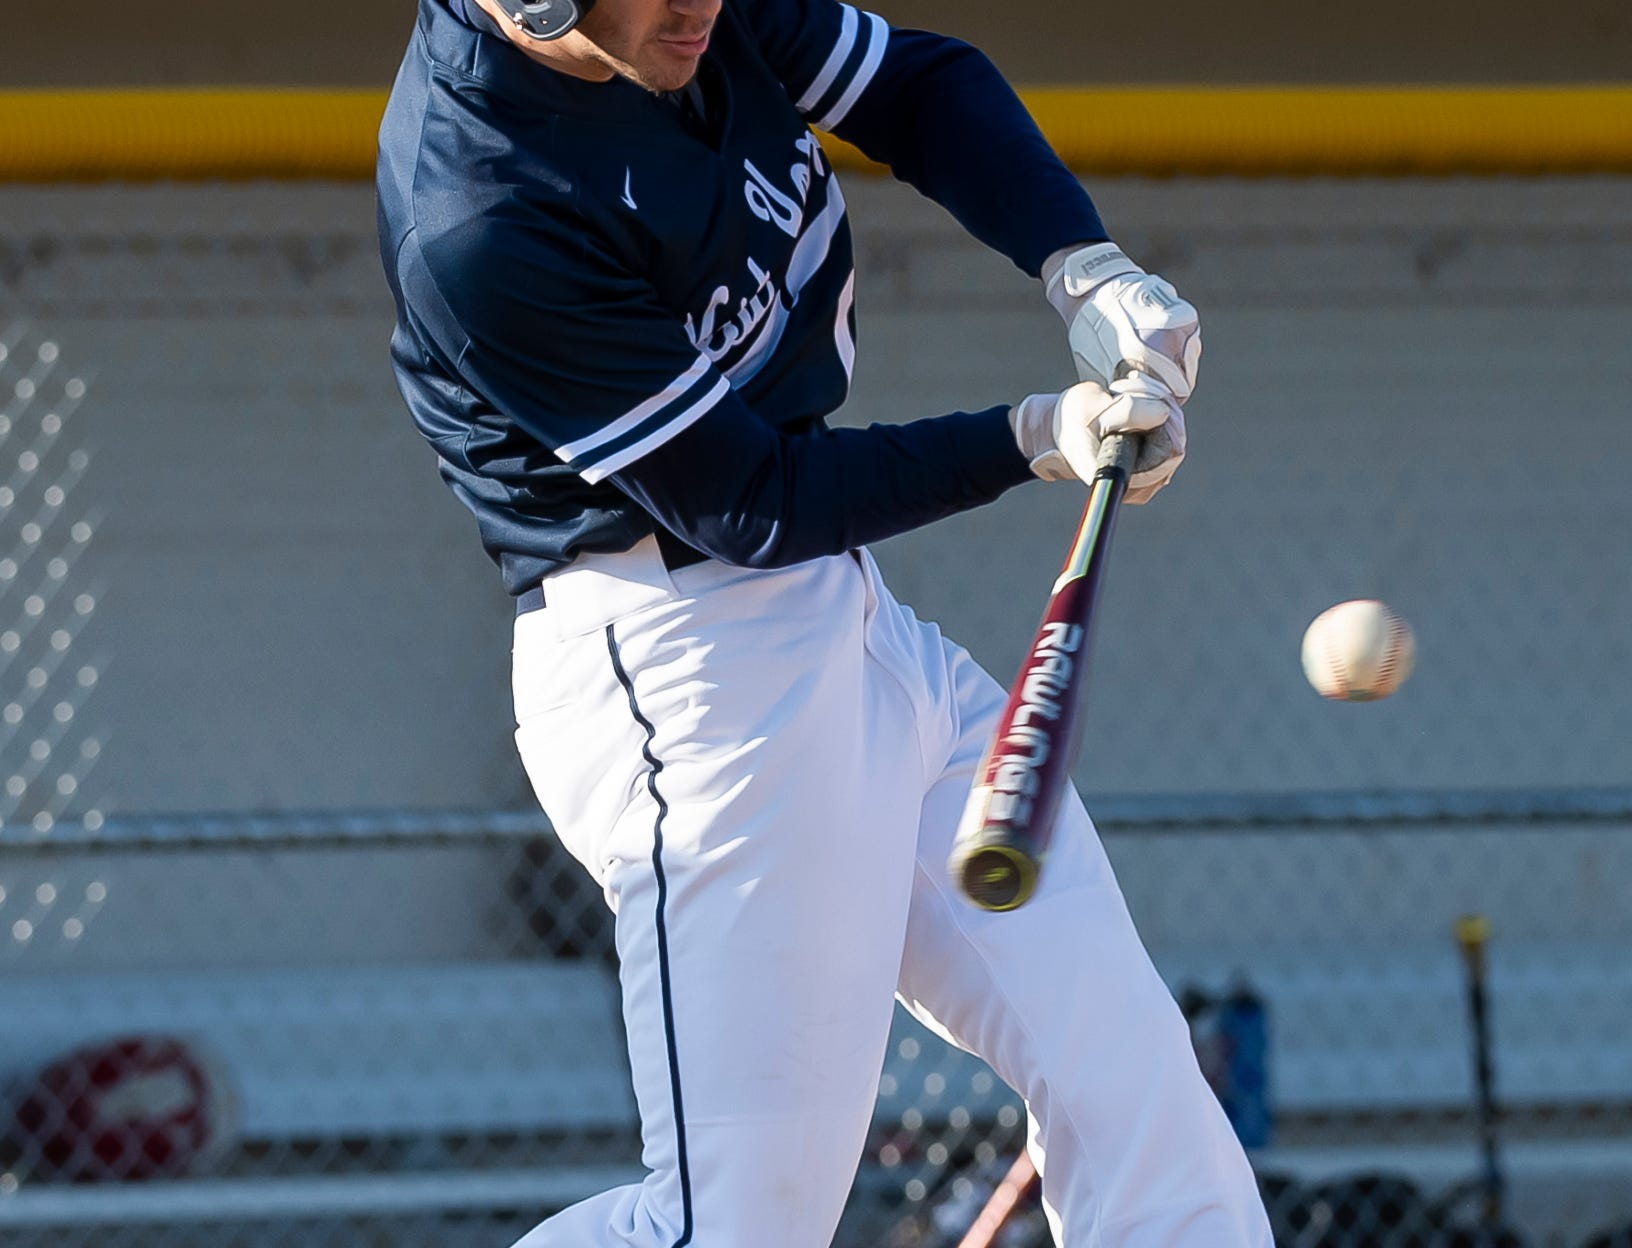 West York's Jeff Minot swings at a pitch during a YAIAA baseball game against Bermudian Springs on Wednesday, April 3, 2019. The Bulldogs won 14-11.